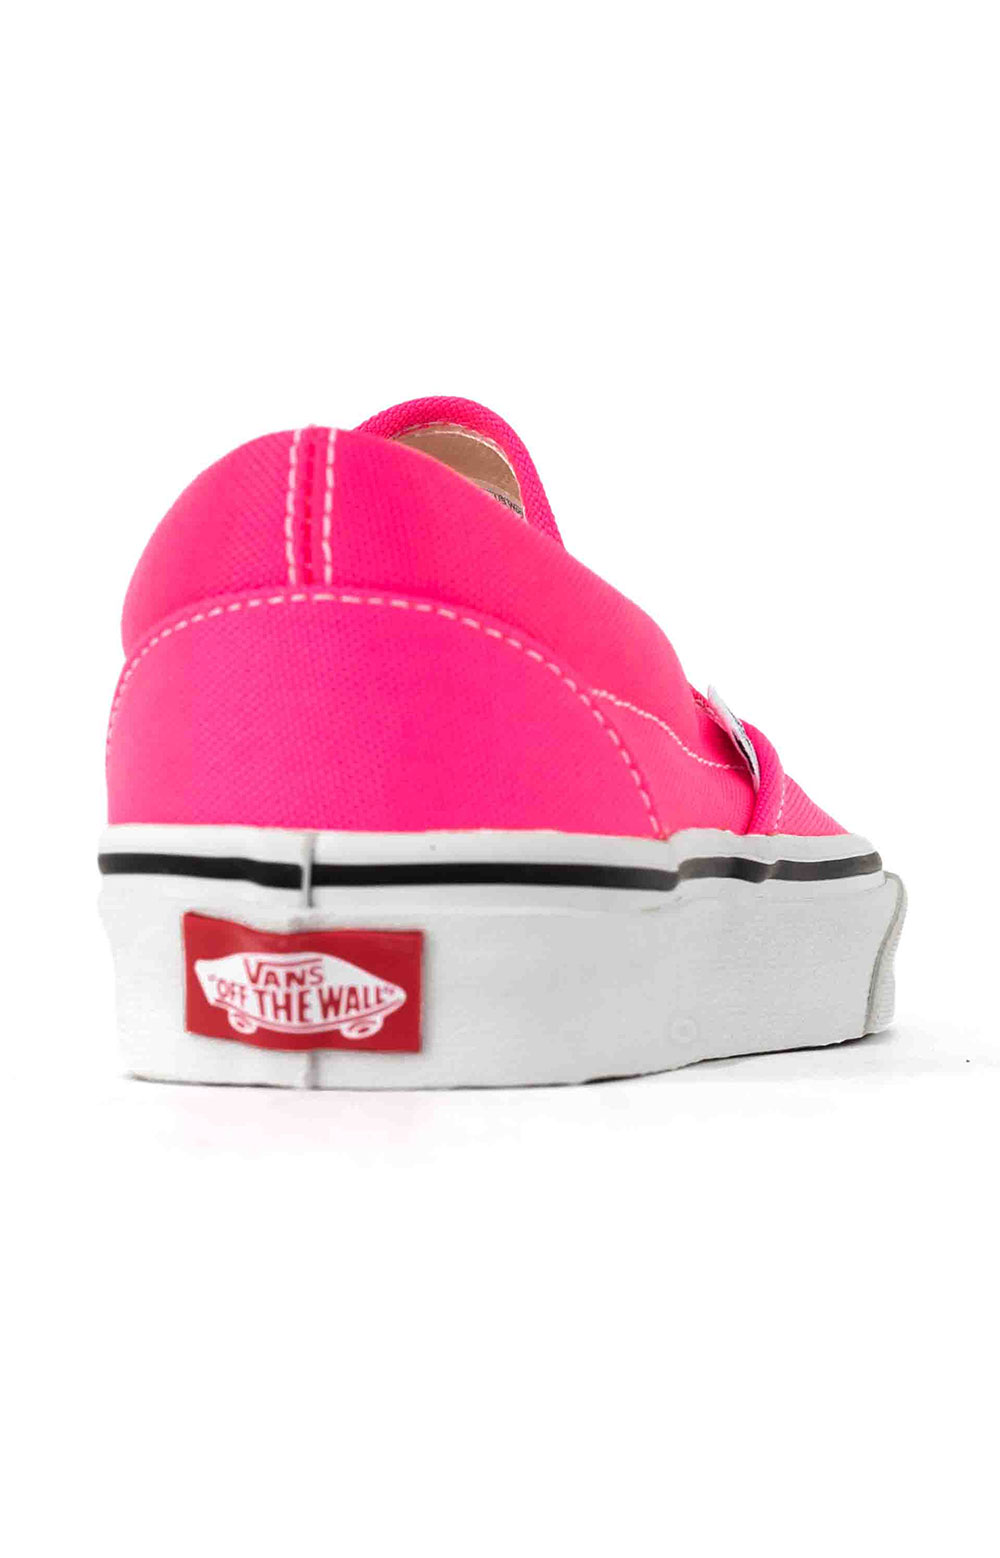 (U38WT6) Neon Classic Slip-On Shoes - Knockout Pink 5